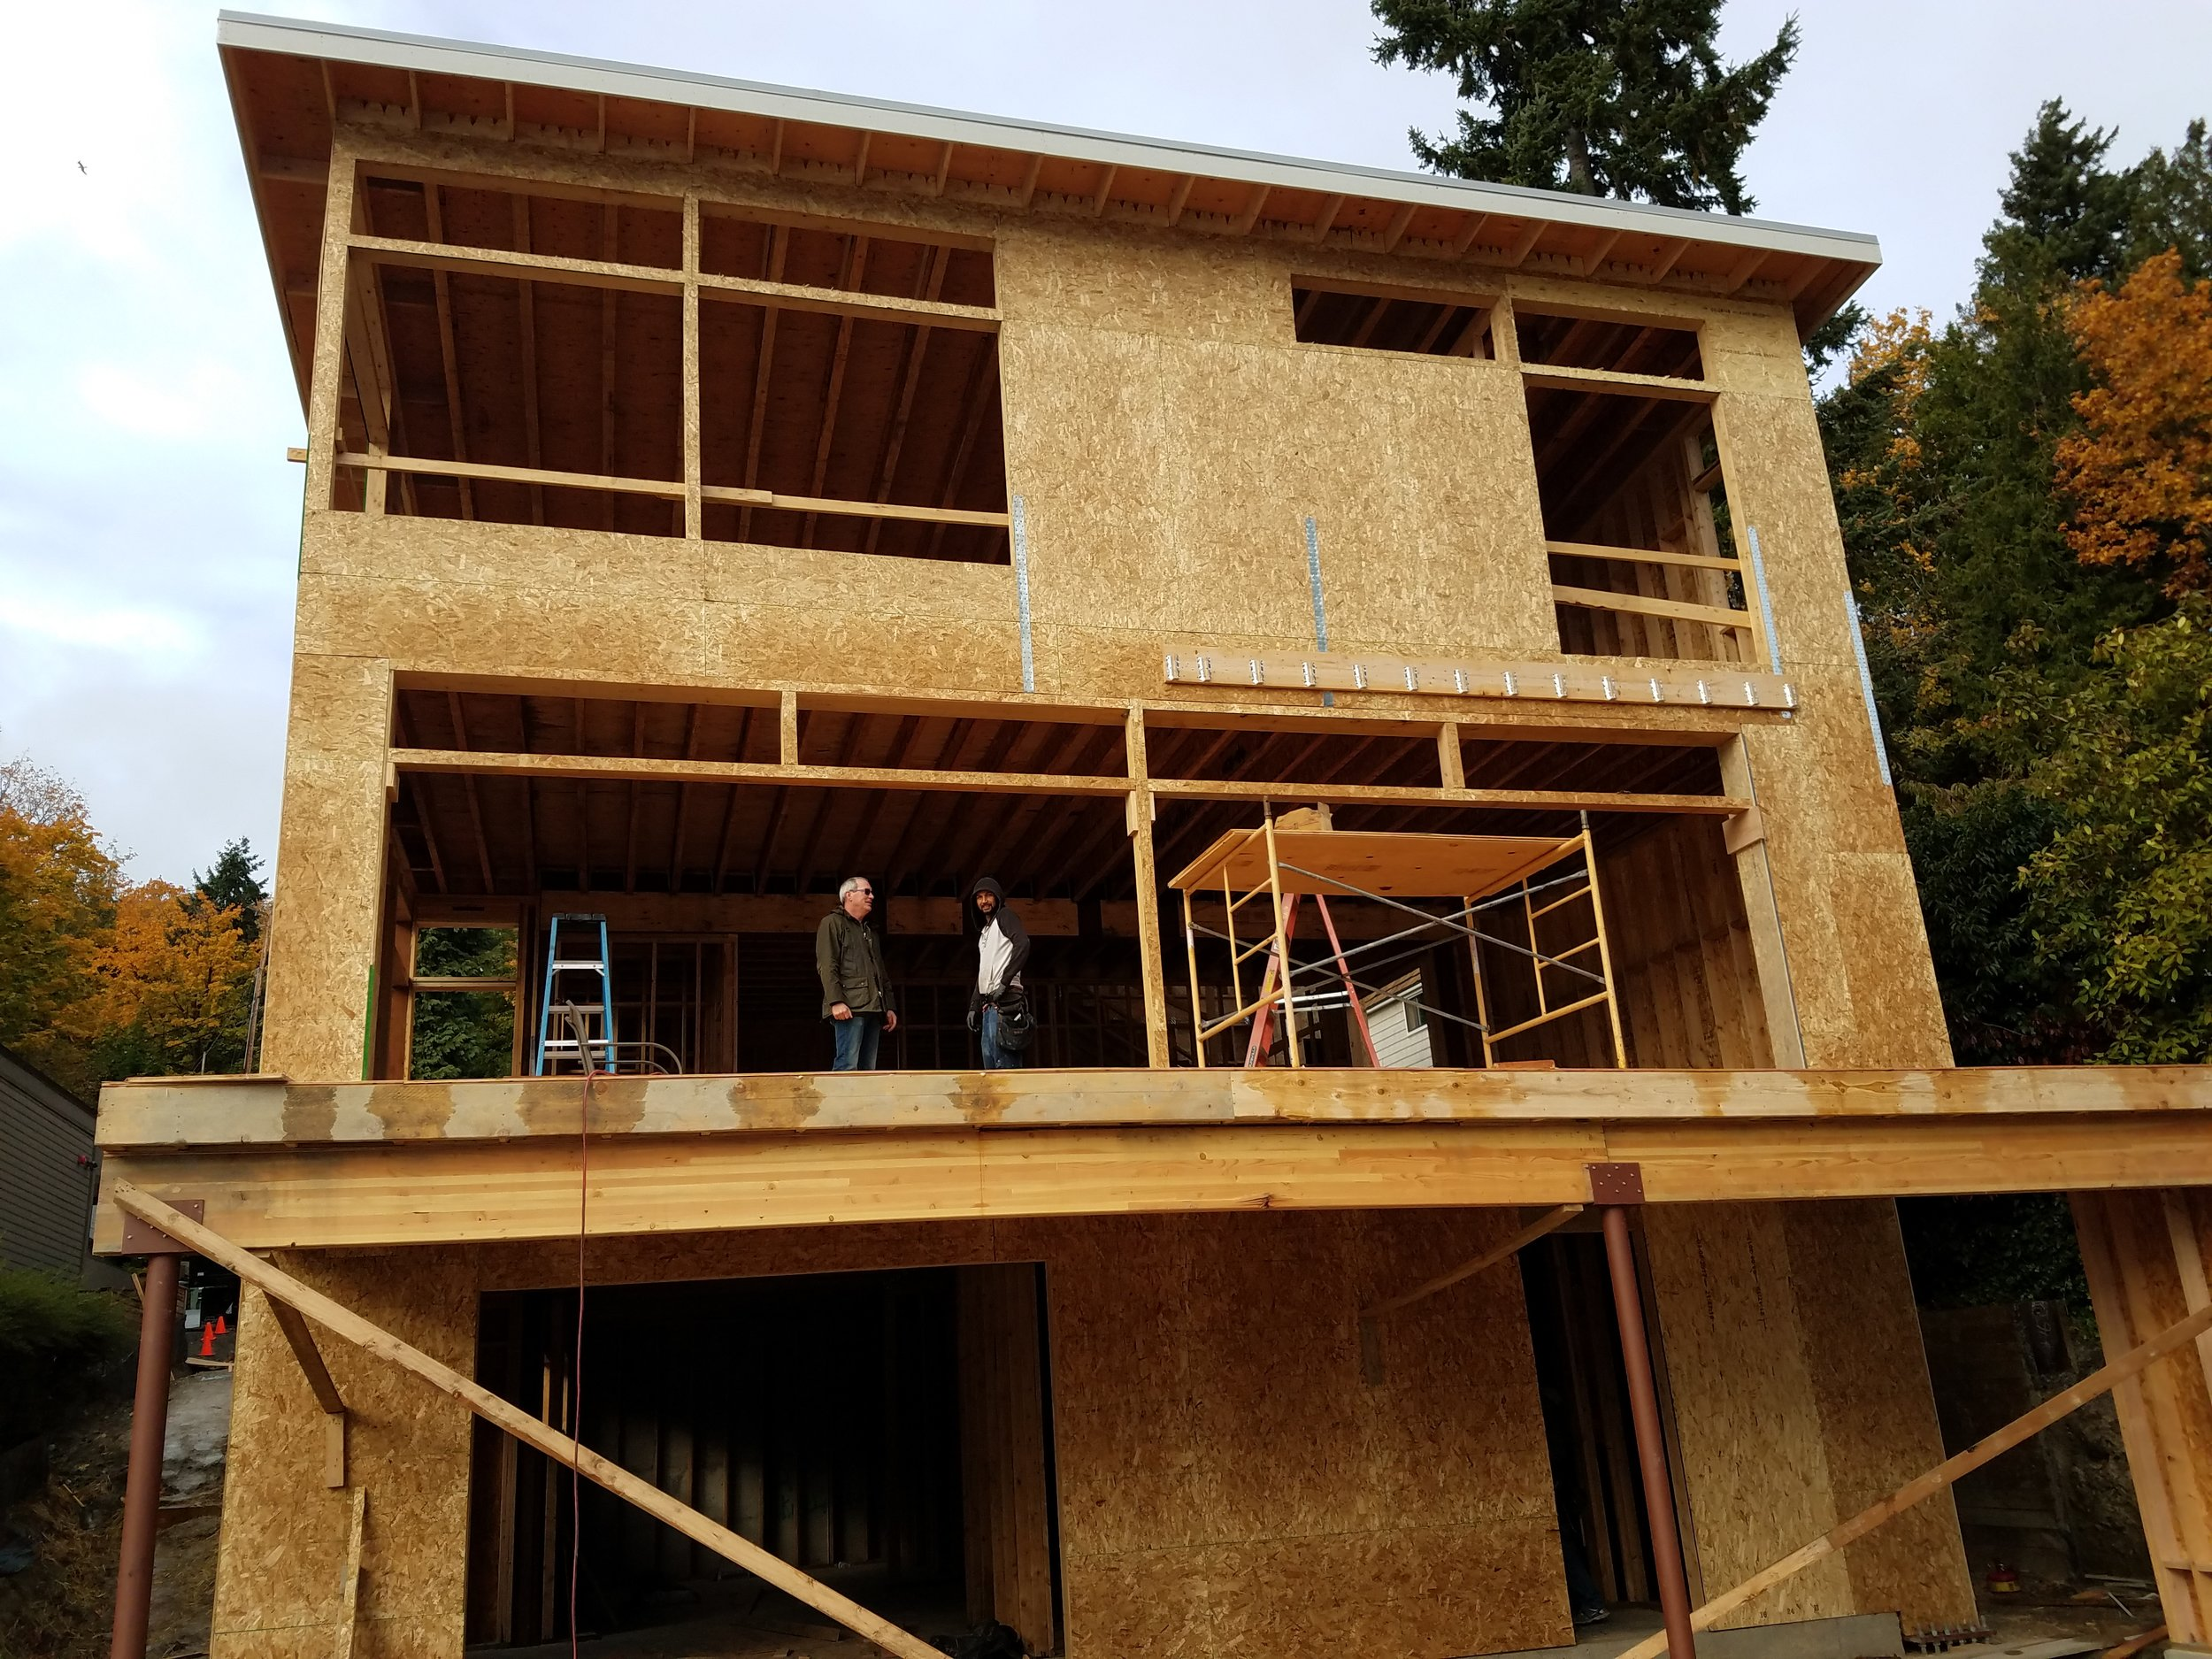 This home will enjoy maximum and unobstructed views of Lake Washington. In order to support three stories of windows, steel instrumentally supports the rest of the wood frame structure.